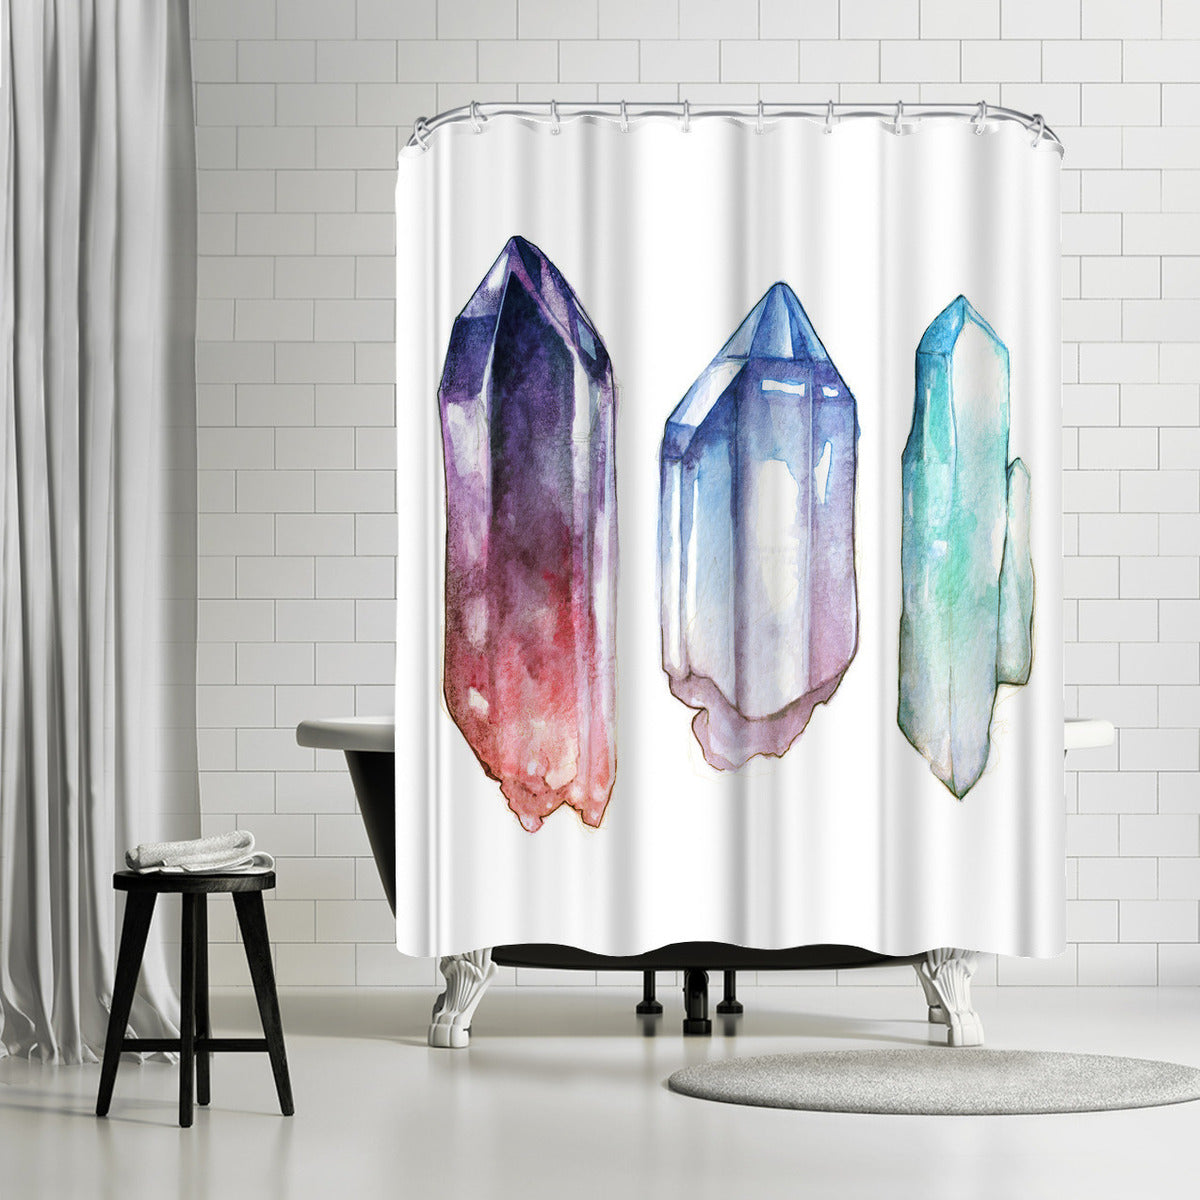 Crystals by Sam Nagel Shower Curtain - Shower Curtain - Americanflat